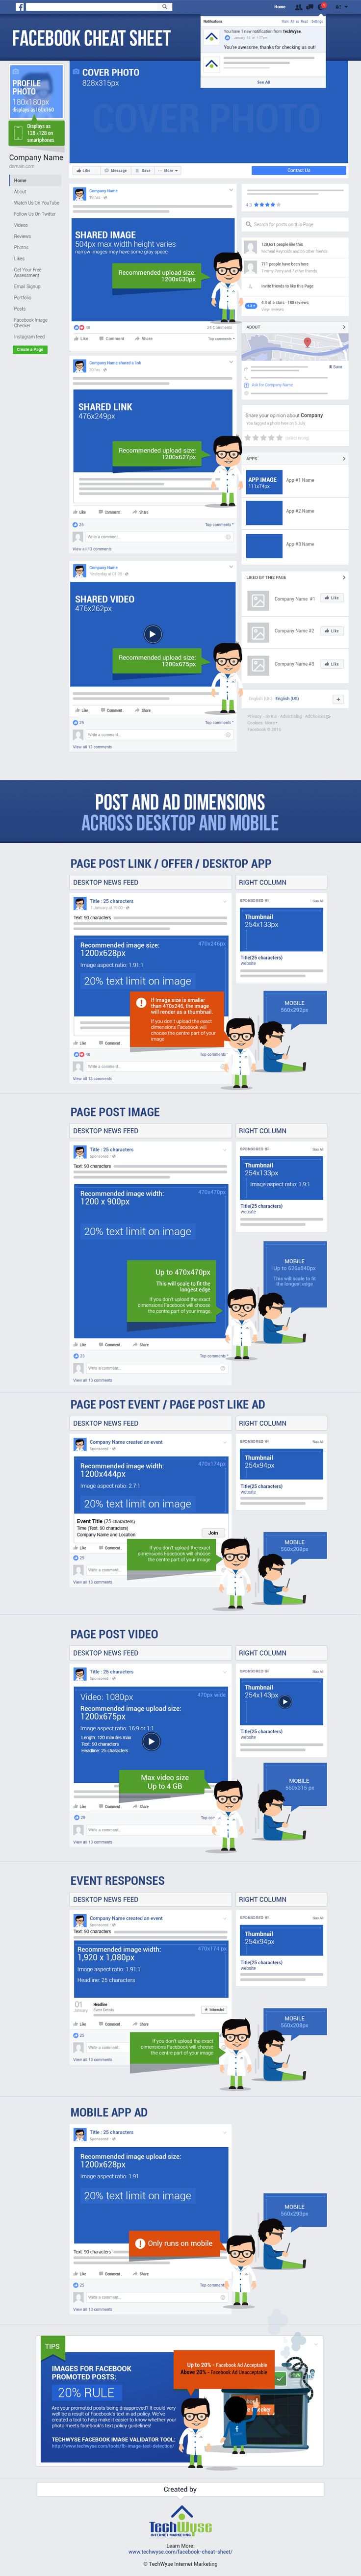 Cheat Sheet for Facebook Image Dimensions